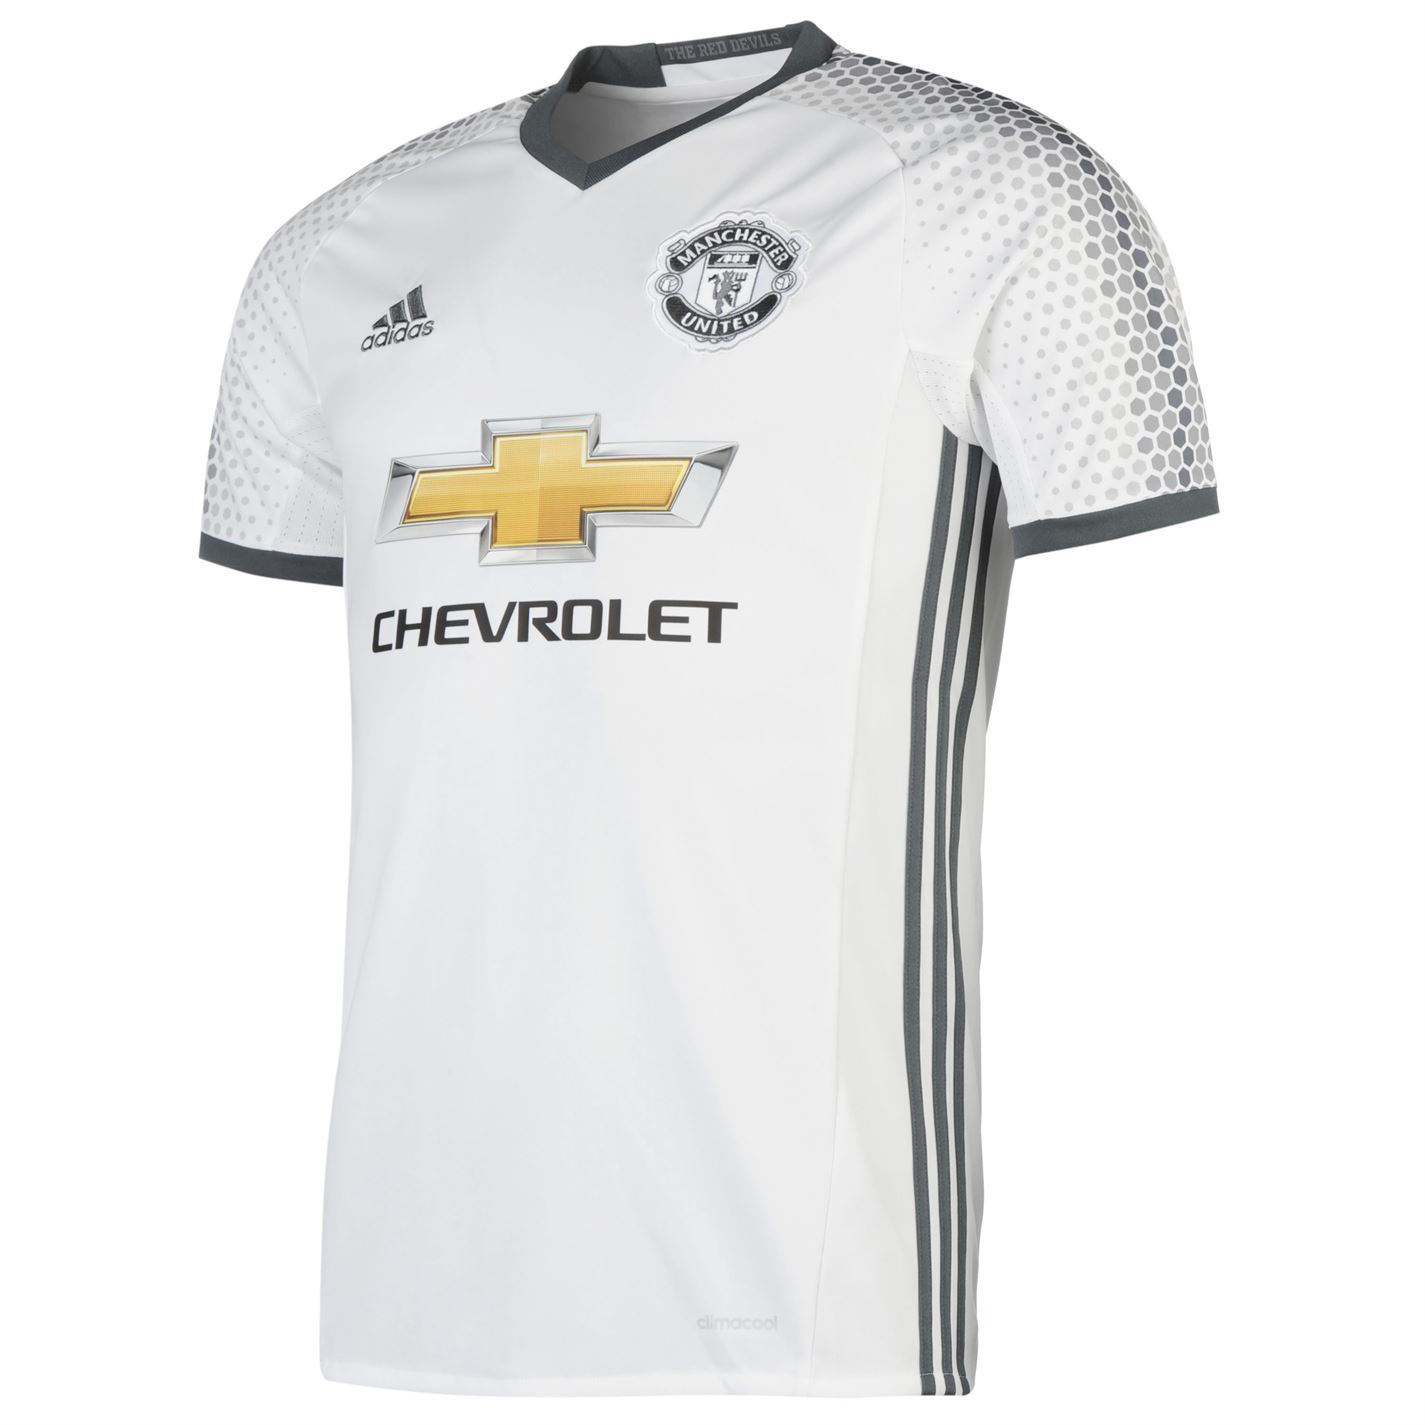 pretty nice 9bf88 f3357 Details about Adidas Manchester United 3rd Jersey 2016 2017 ...